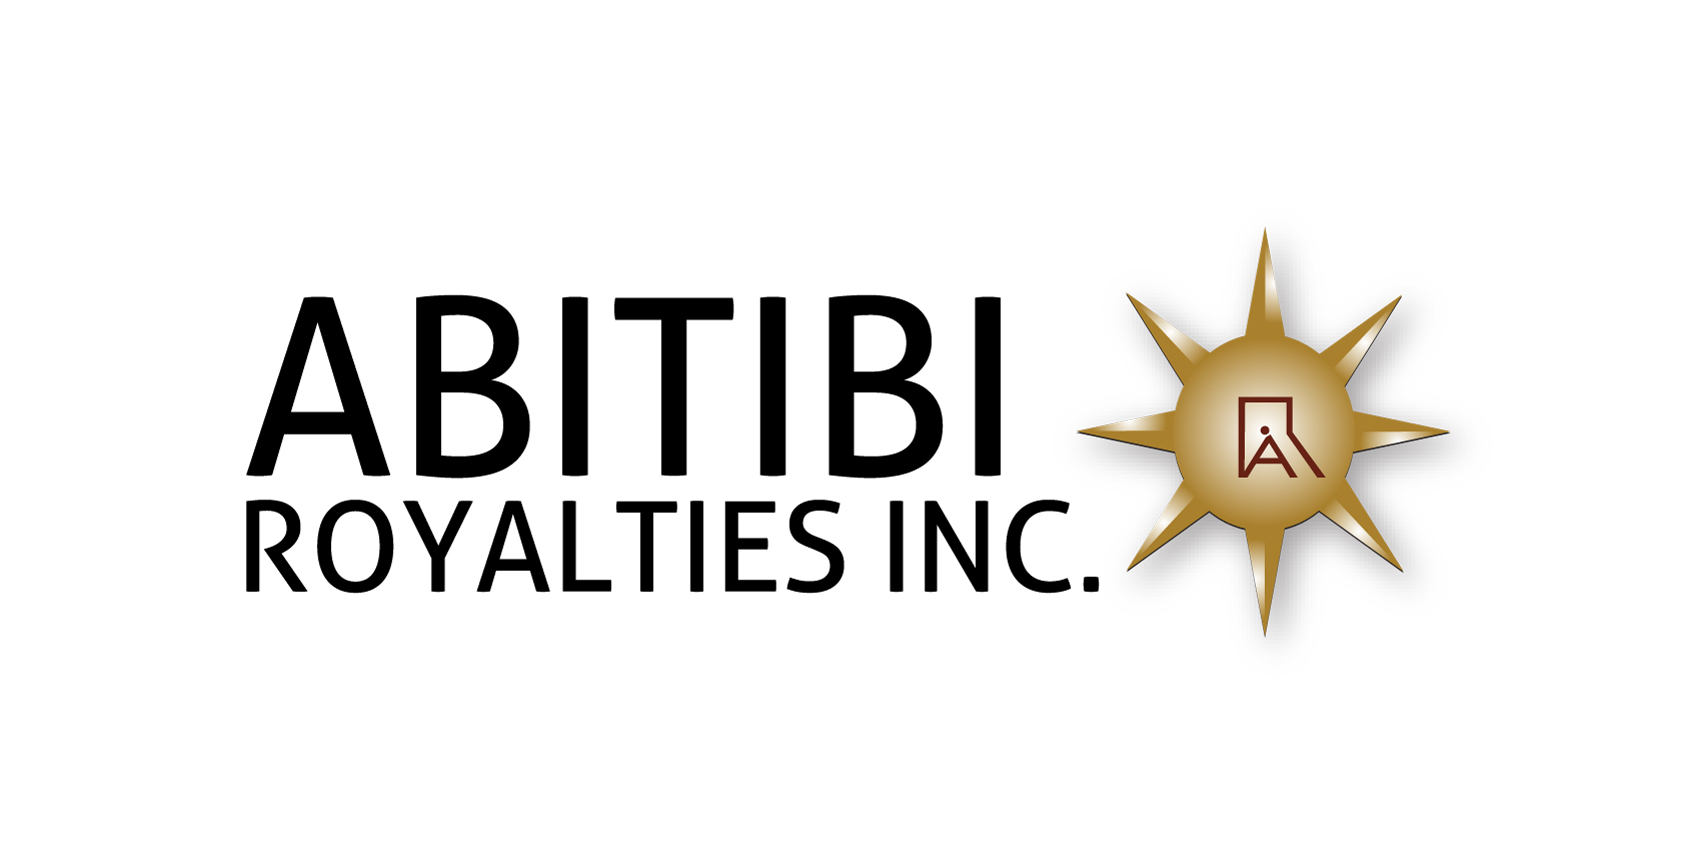 ABITIBI ROYALTIES: COVID-19 UPDATE